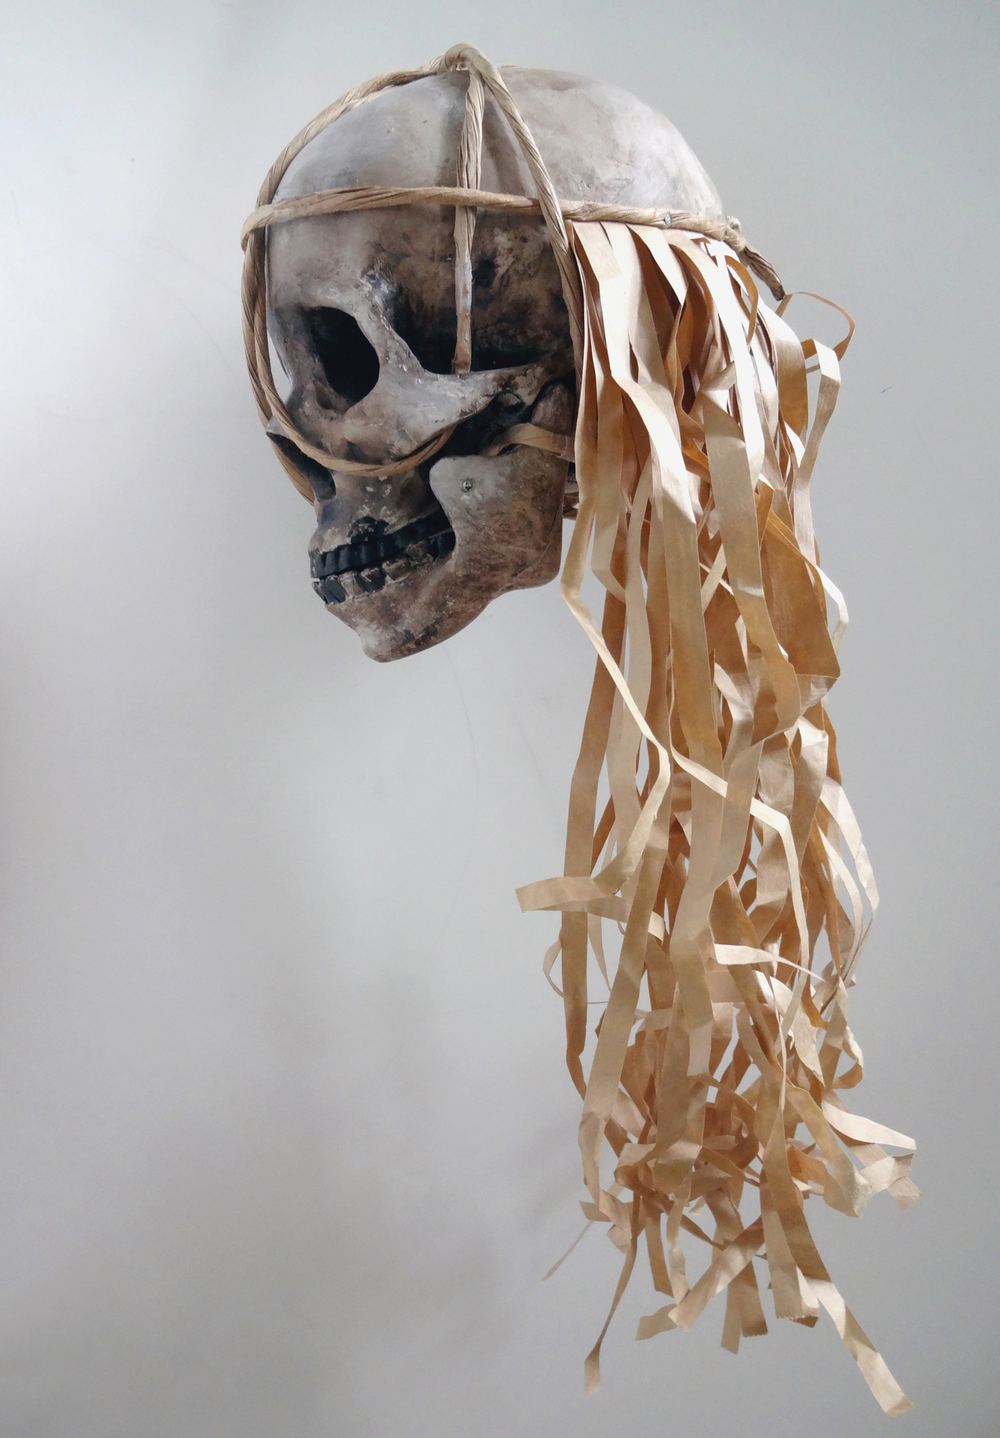 Skull for  Borneo Odyssey  performance made by Marti Cormand.